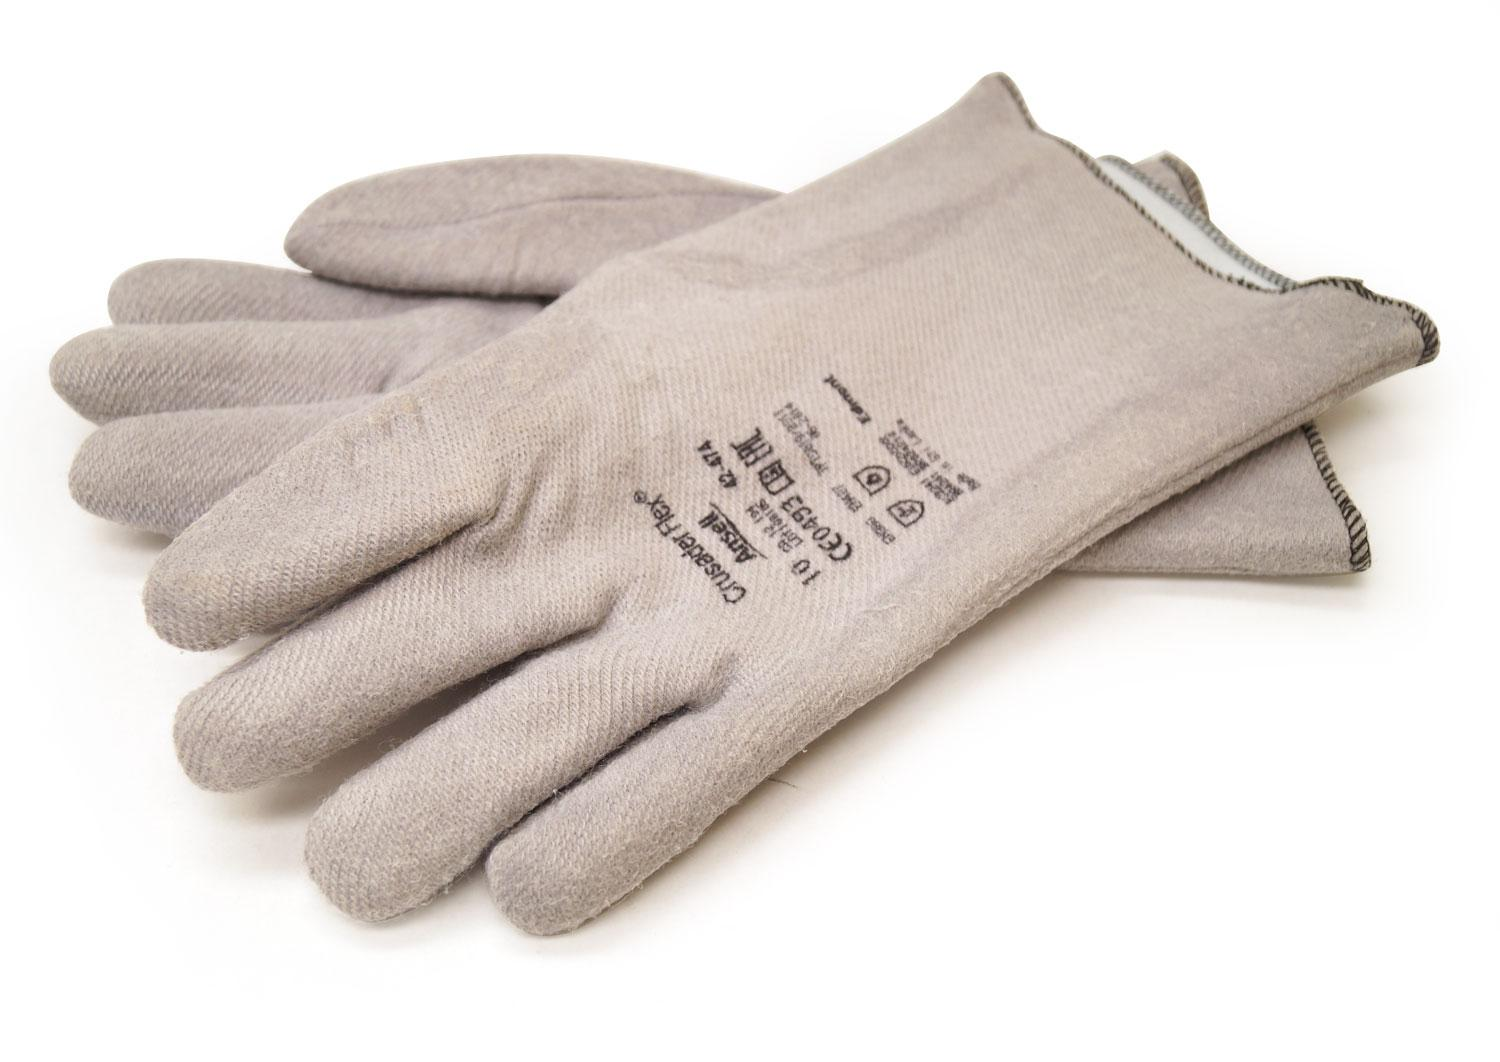 Hot Gloves - 1 Pair